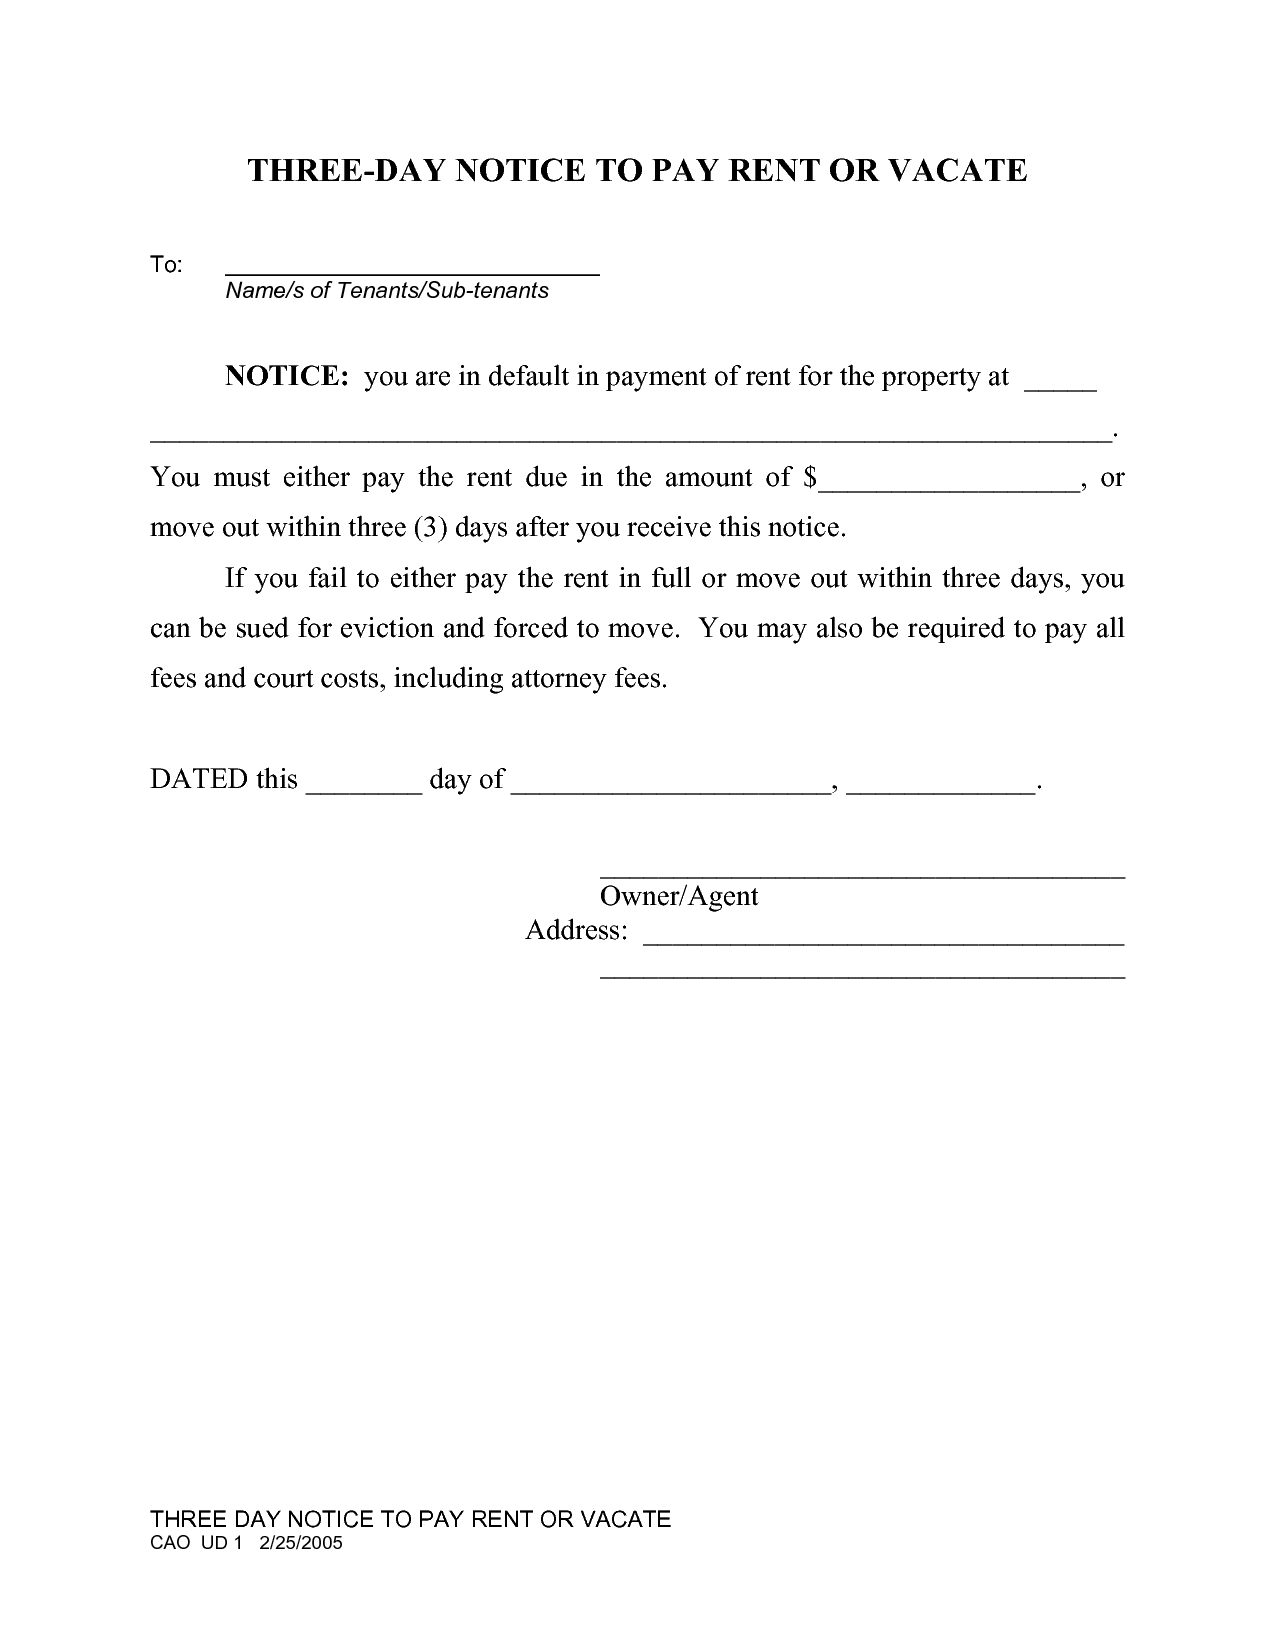 Blank Eviction Notice Form – How to Write Eviction Notice